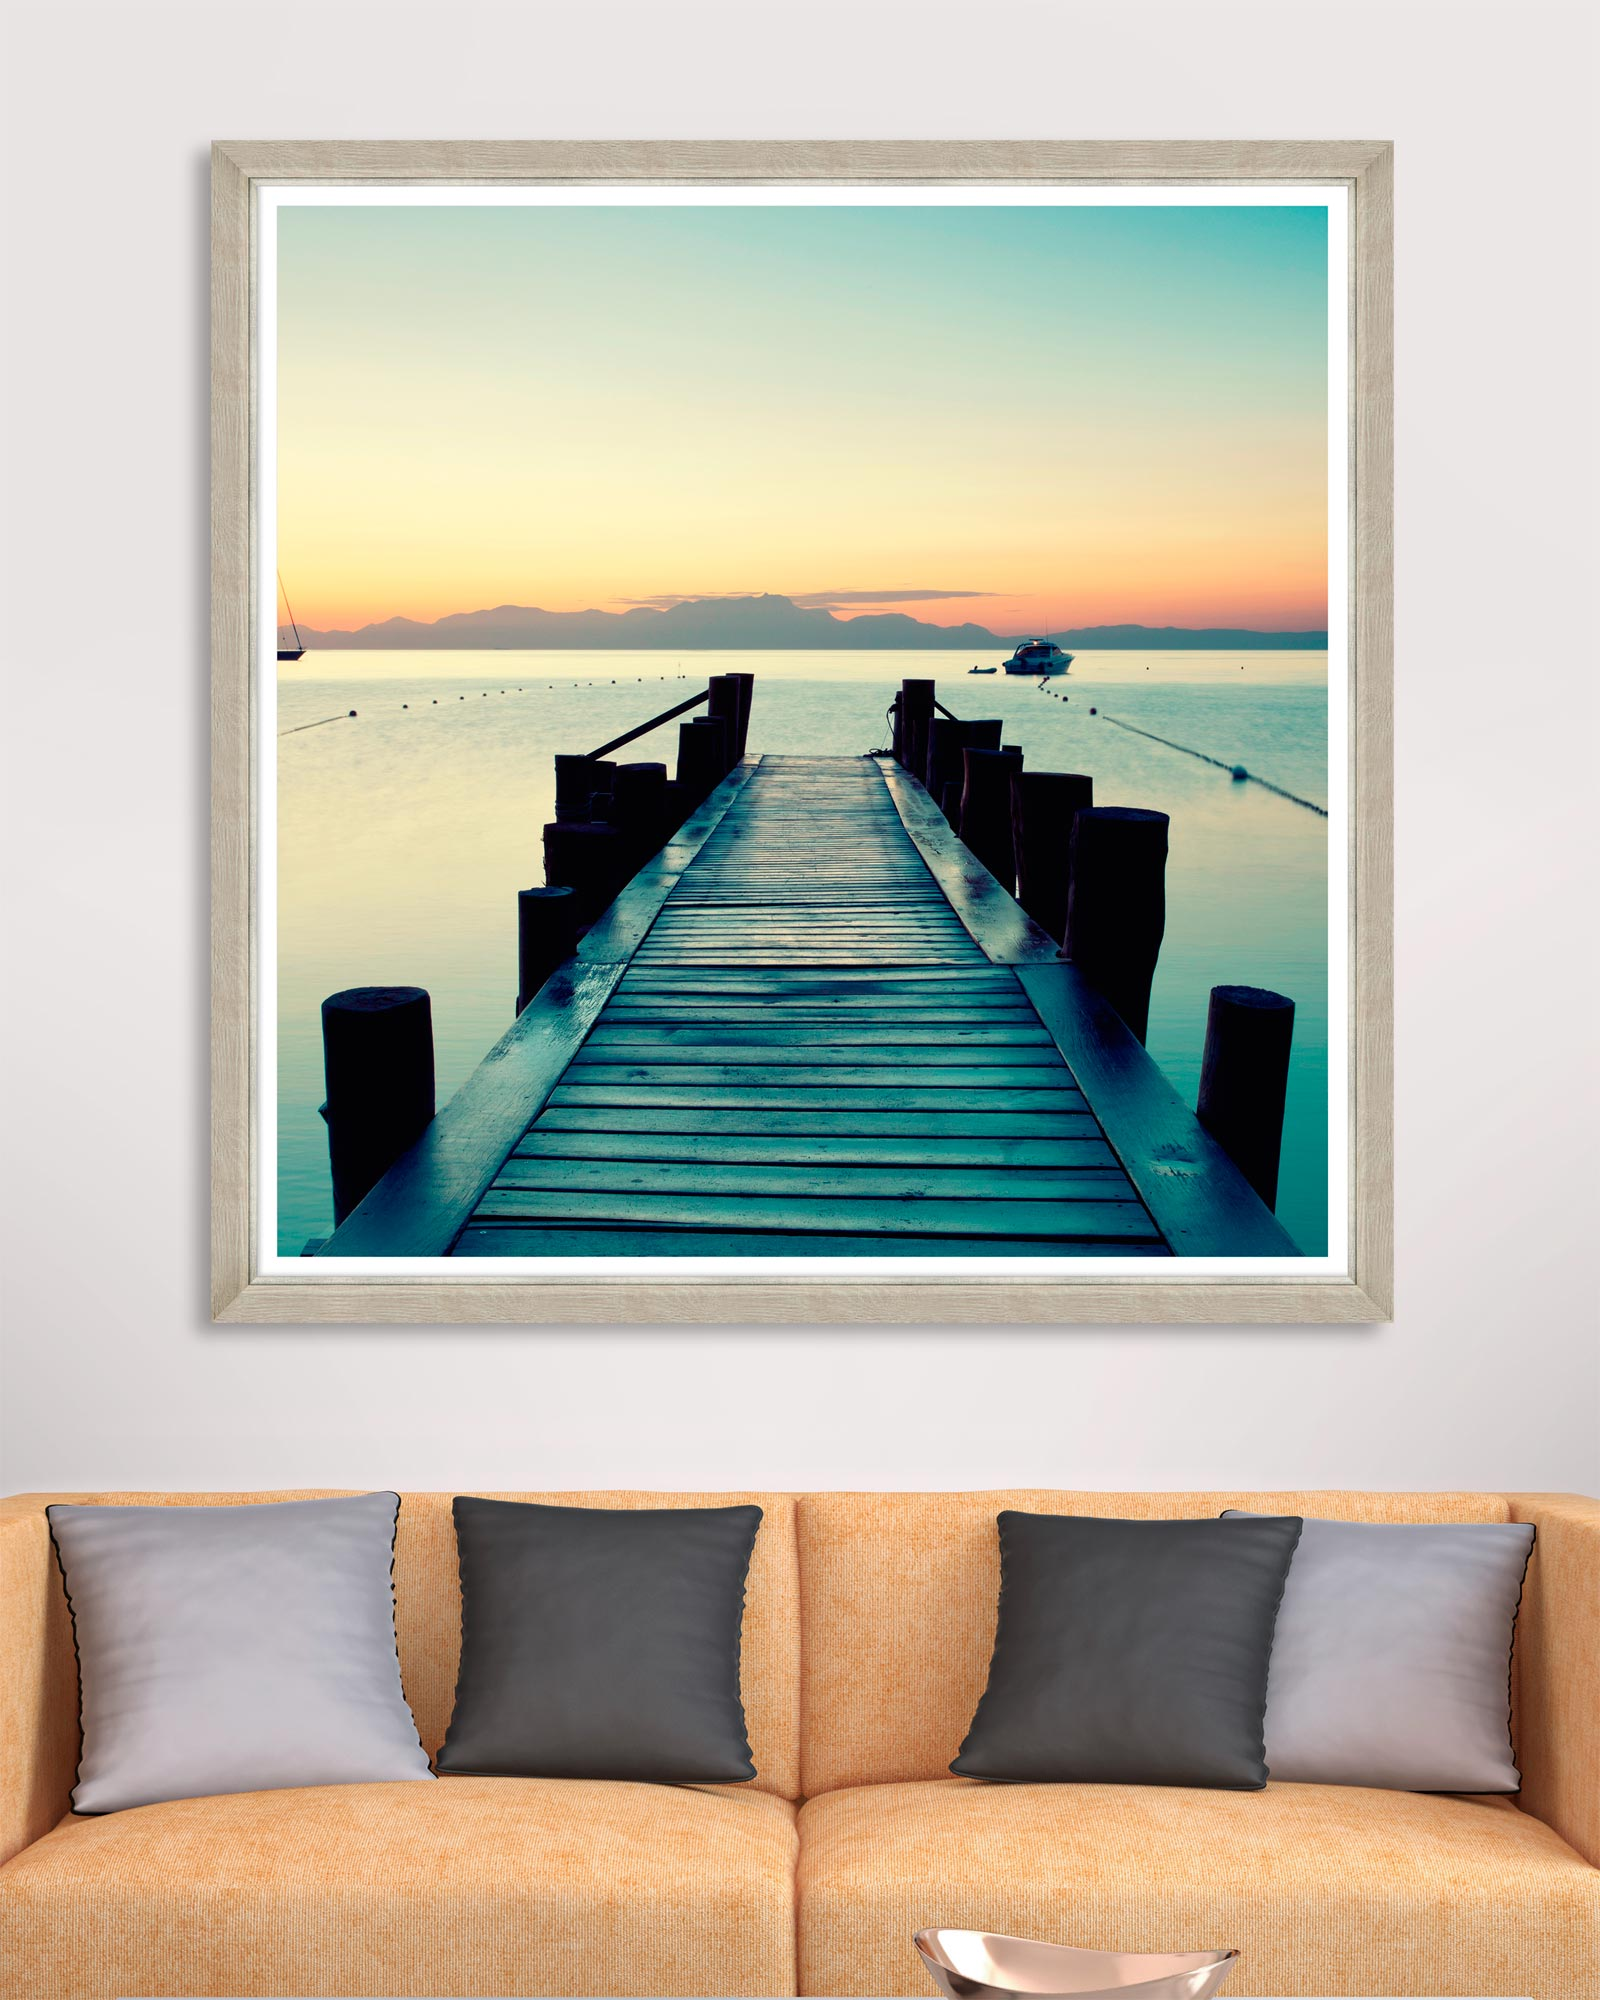 Tablou Framed Art Sunset Pier imagine